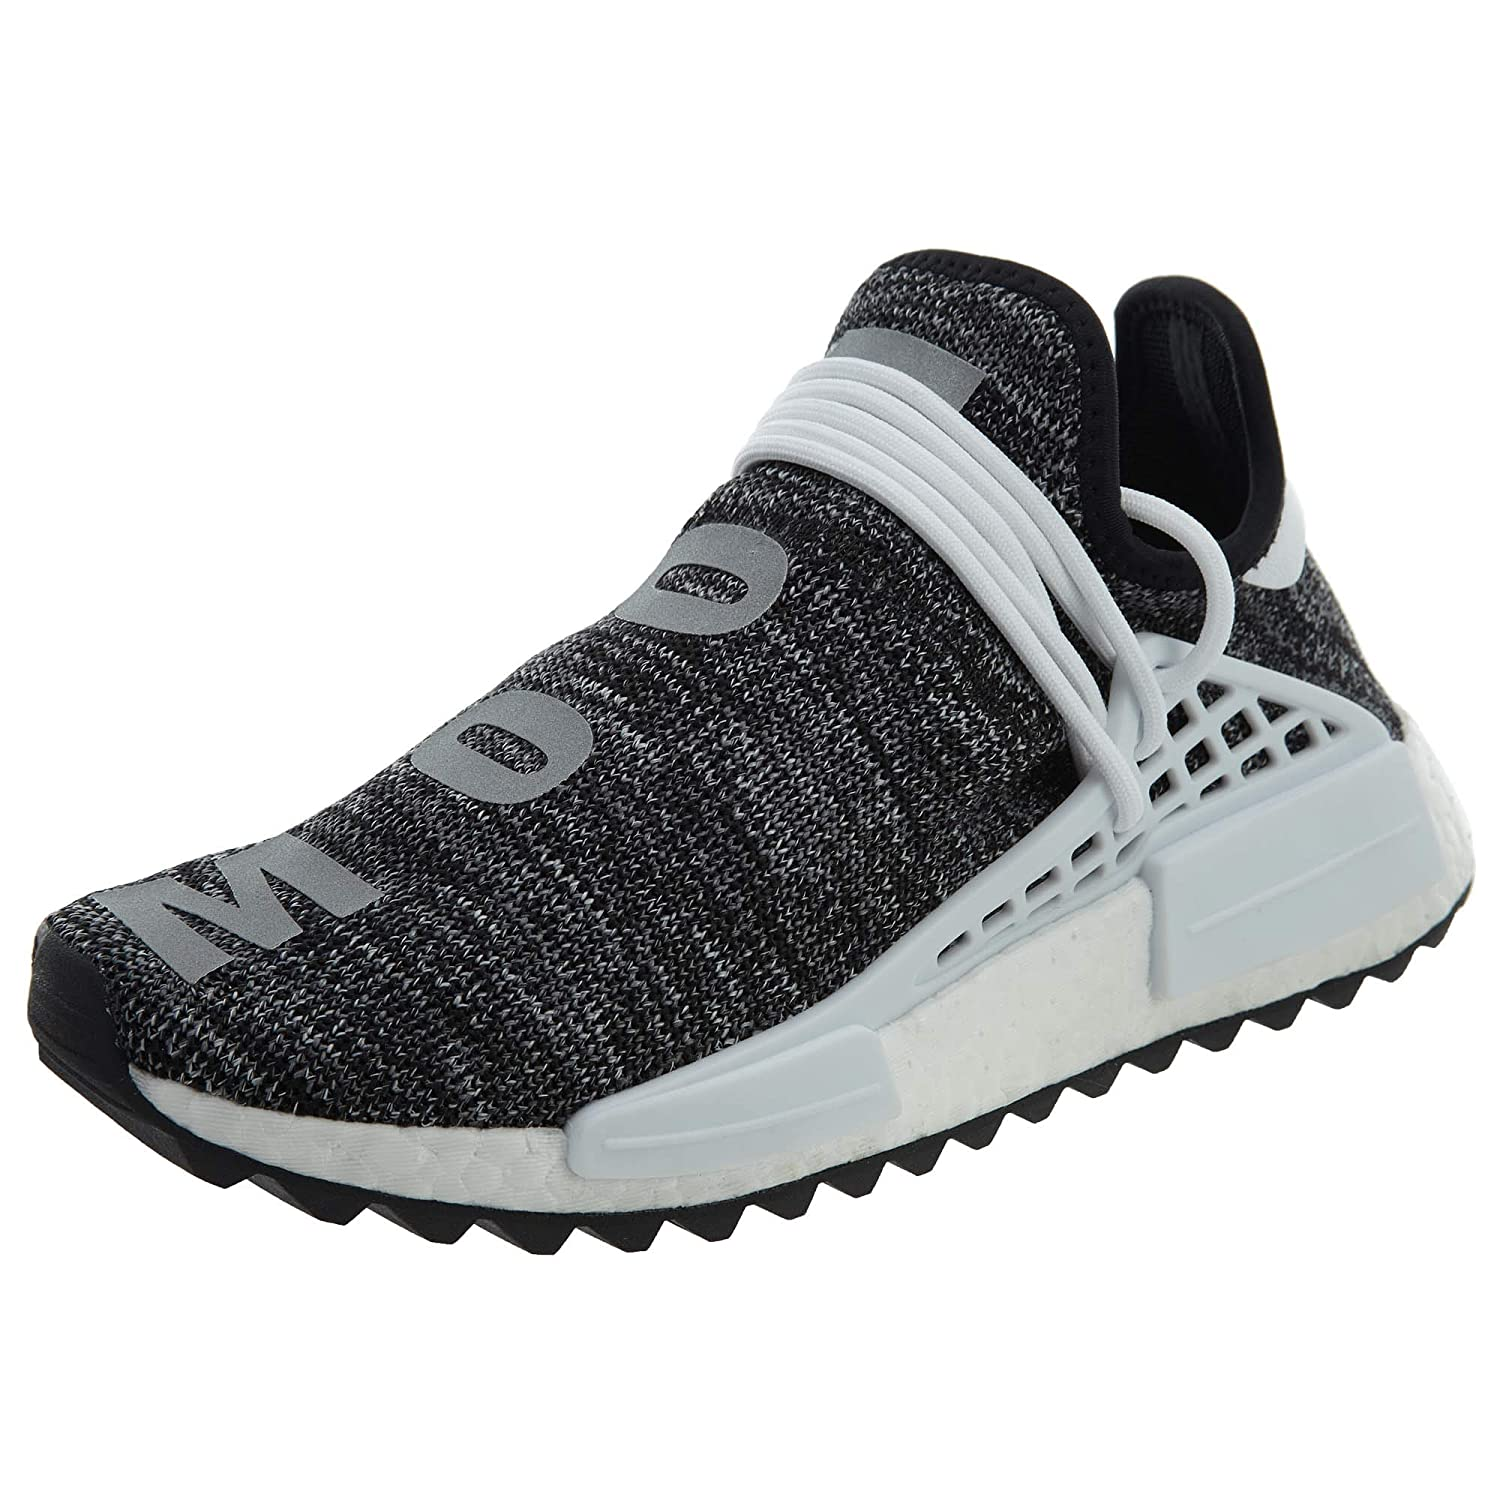 2fd4a06f57d85 adidas NMD Human Race Trail Pharrell Williams Oreo - Black White Trainer  Size 7 UK  Amazon.co.uk  Shoes   Bags